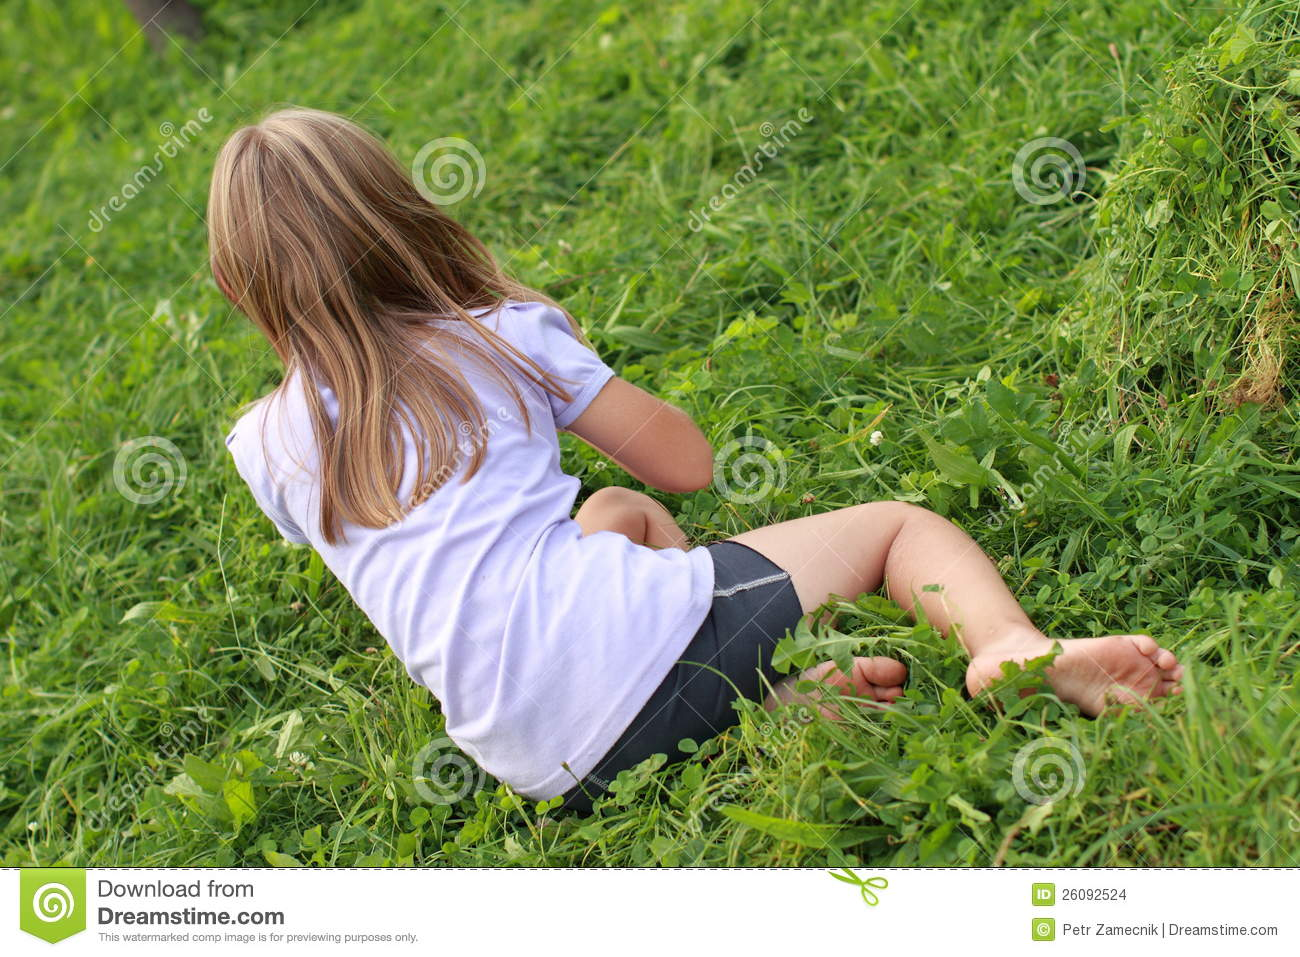 Rest Floor Plan Barefoot Girl On Grass Stock Images Image 26092524